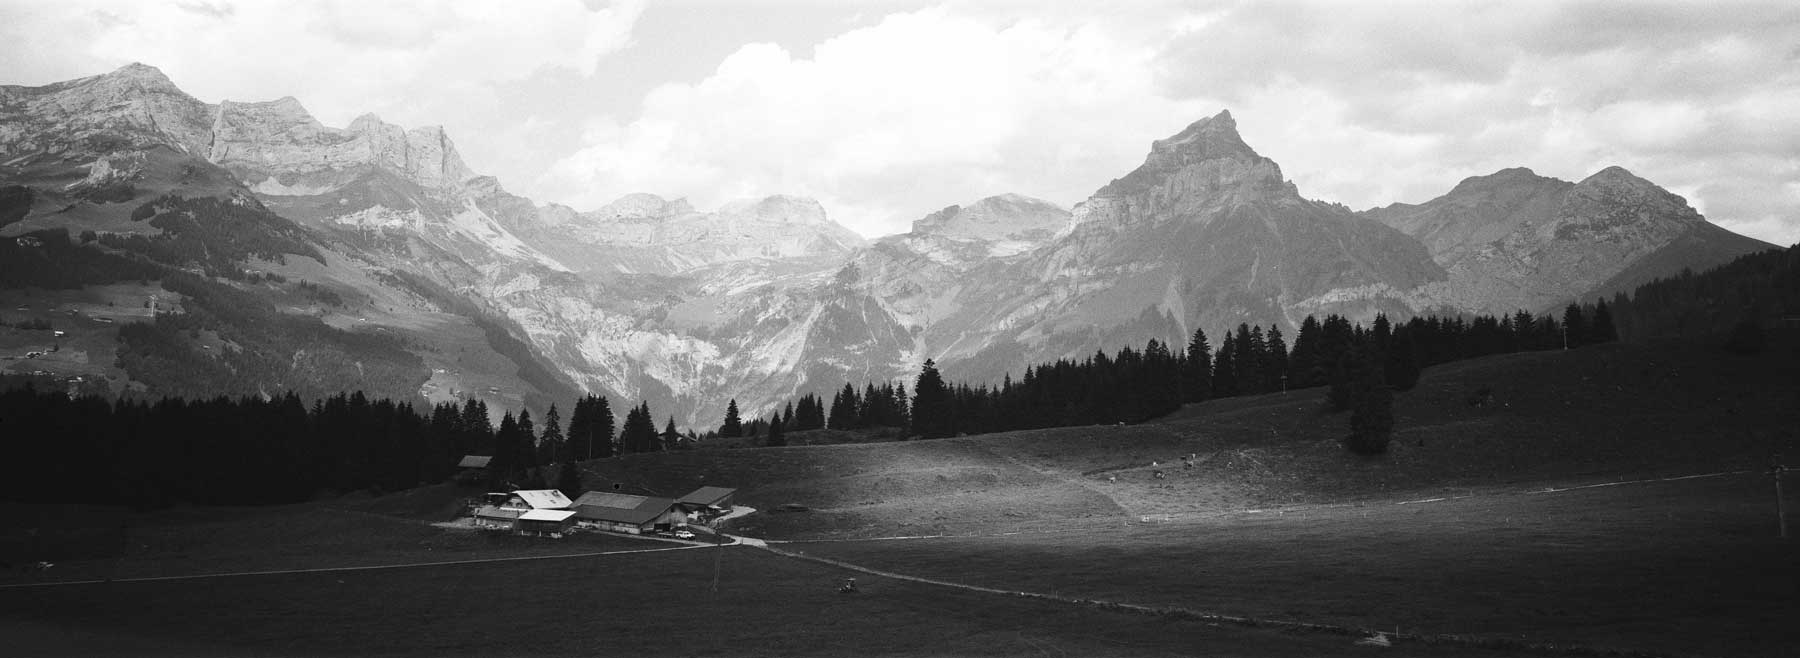 hasselblad-xpan-ii-review-hassel-rangefinder-camera-film-camera-review-photography-pano-panorama-panoramic-45mm-f4-switzerland-bw-black-and-white-film-efke-acros-100-mountains-titlis